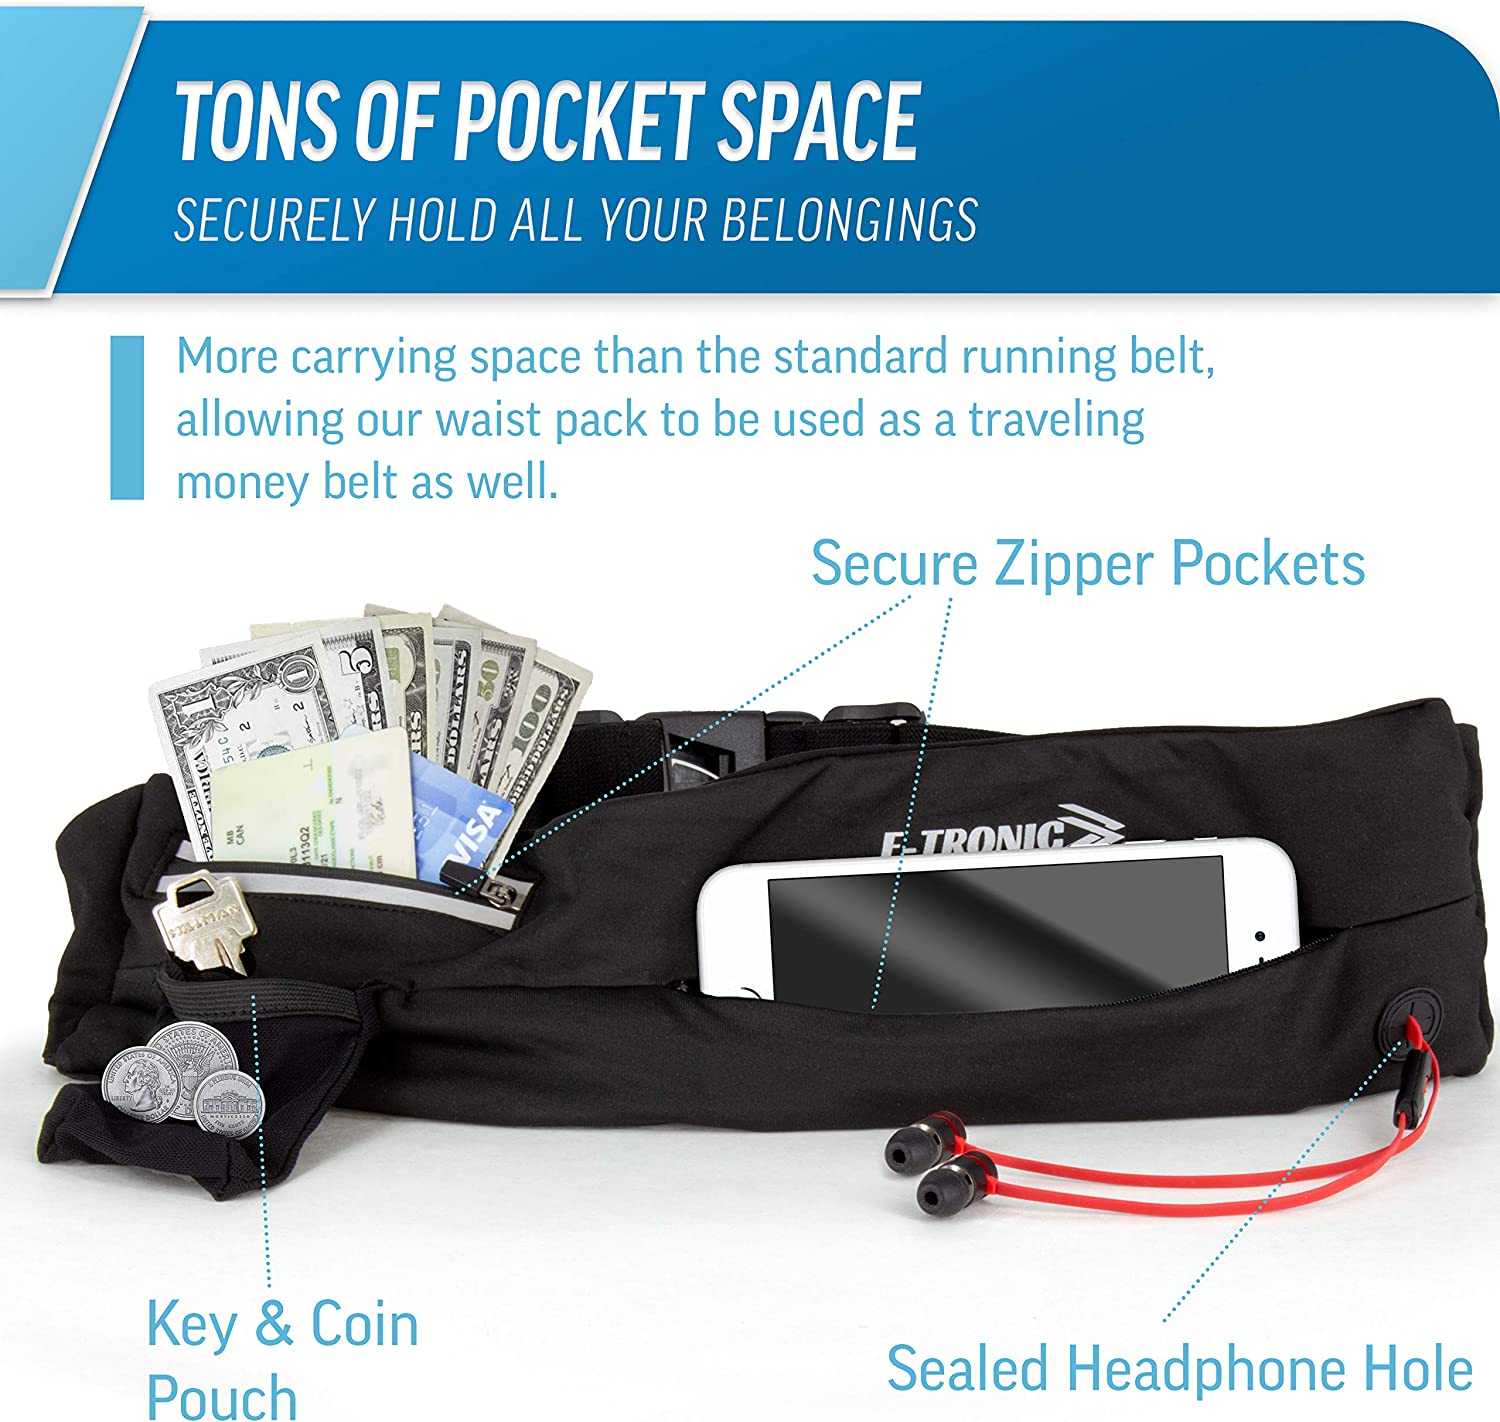 Happy Fathers Day Beautiful Greeting Card Running Lumbar Pack For Travel Outdoor Sports Walkin Travel Waist Pack,travel Pocket With Adjustable Belt